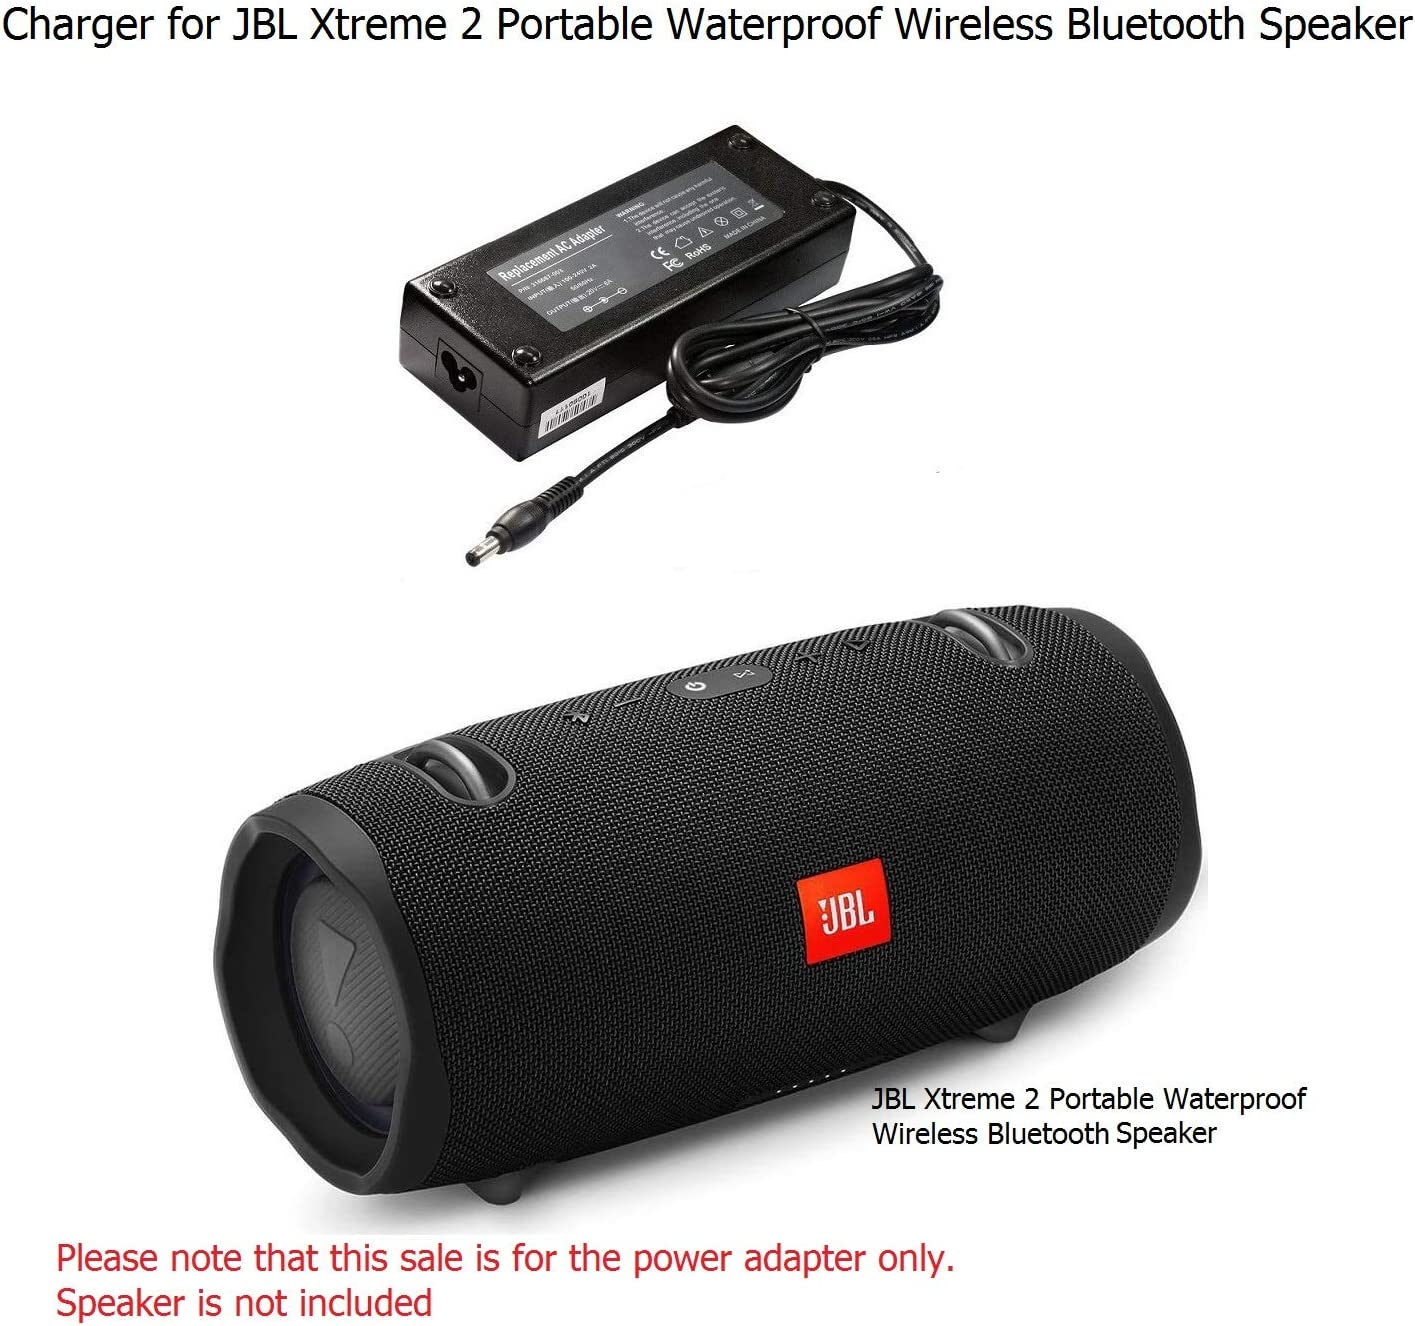 Charger for JBL Xtreme 2 Portable Wireless Bluetooth Speaker